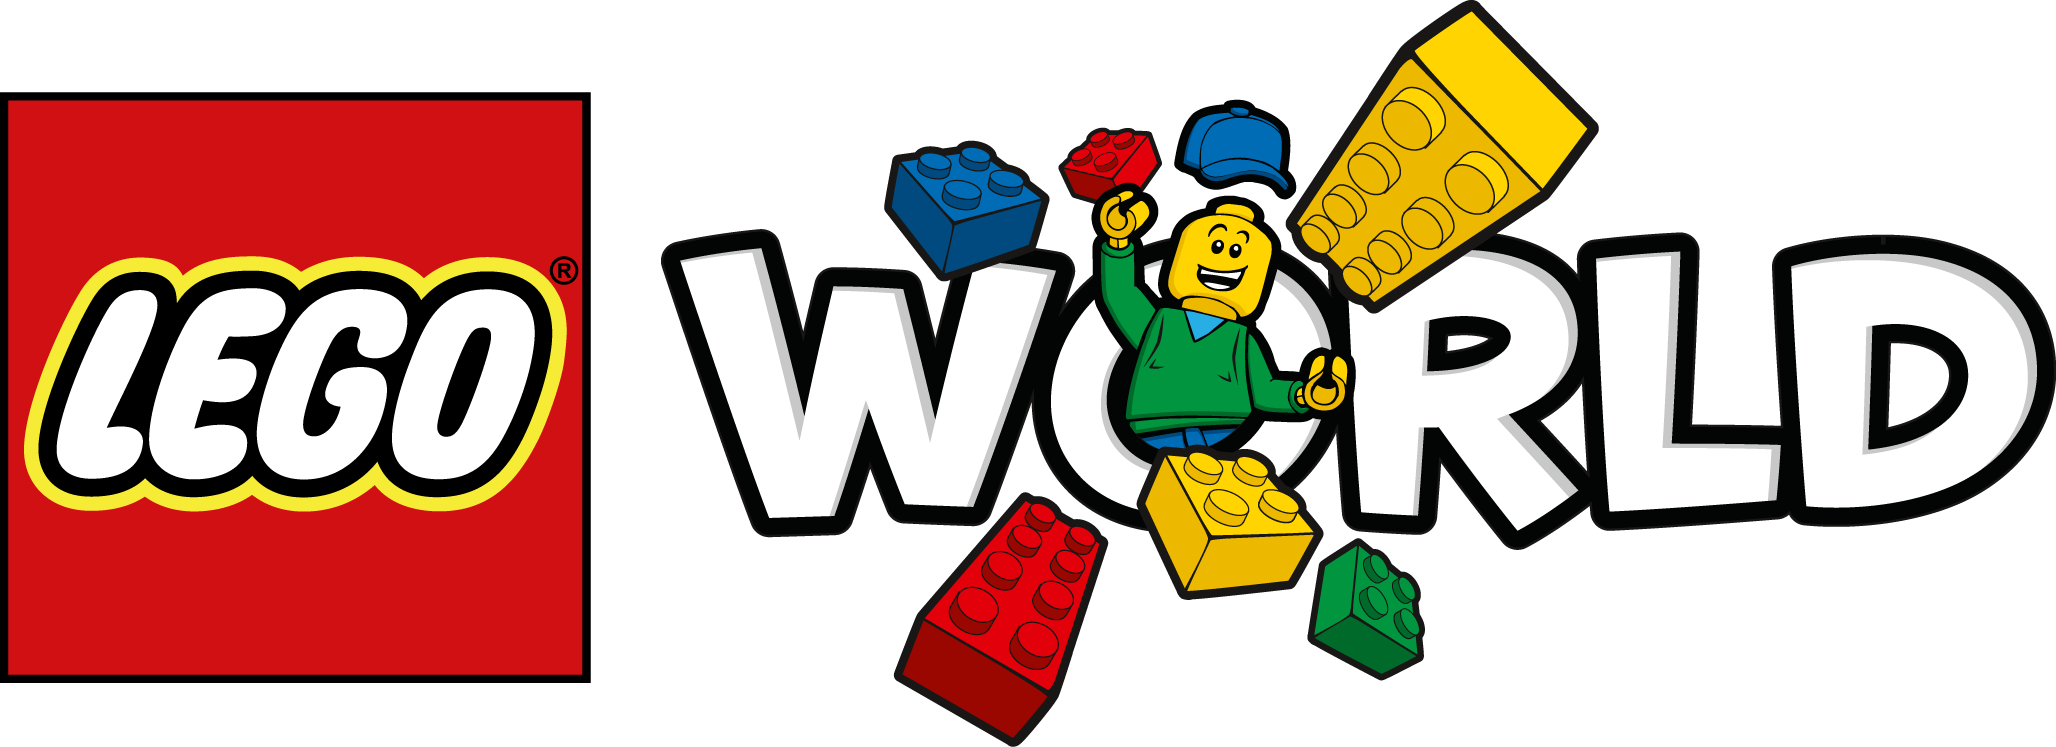 Lego worlds logo clipart clipart royalty free stock Lego Toy clipart royalty free stock